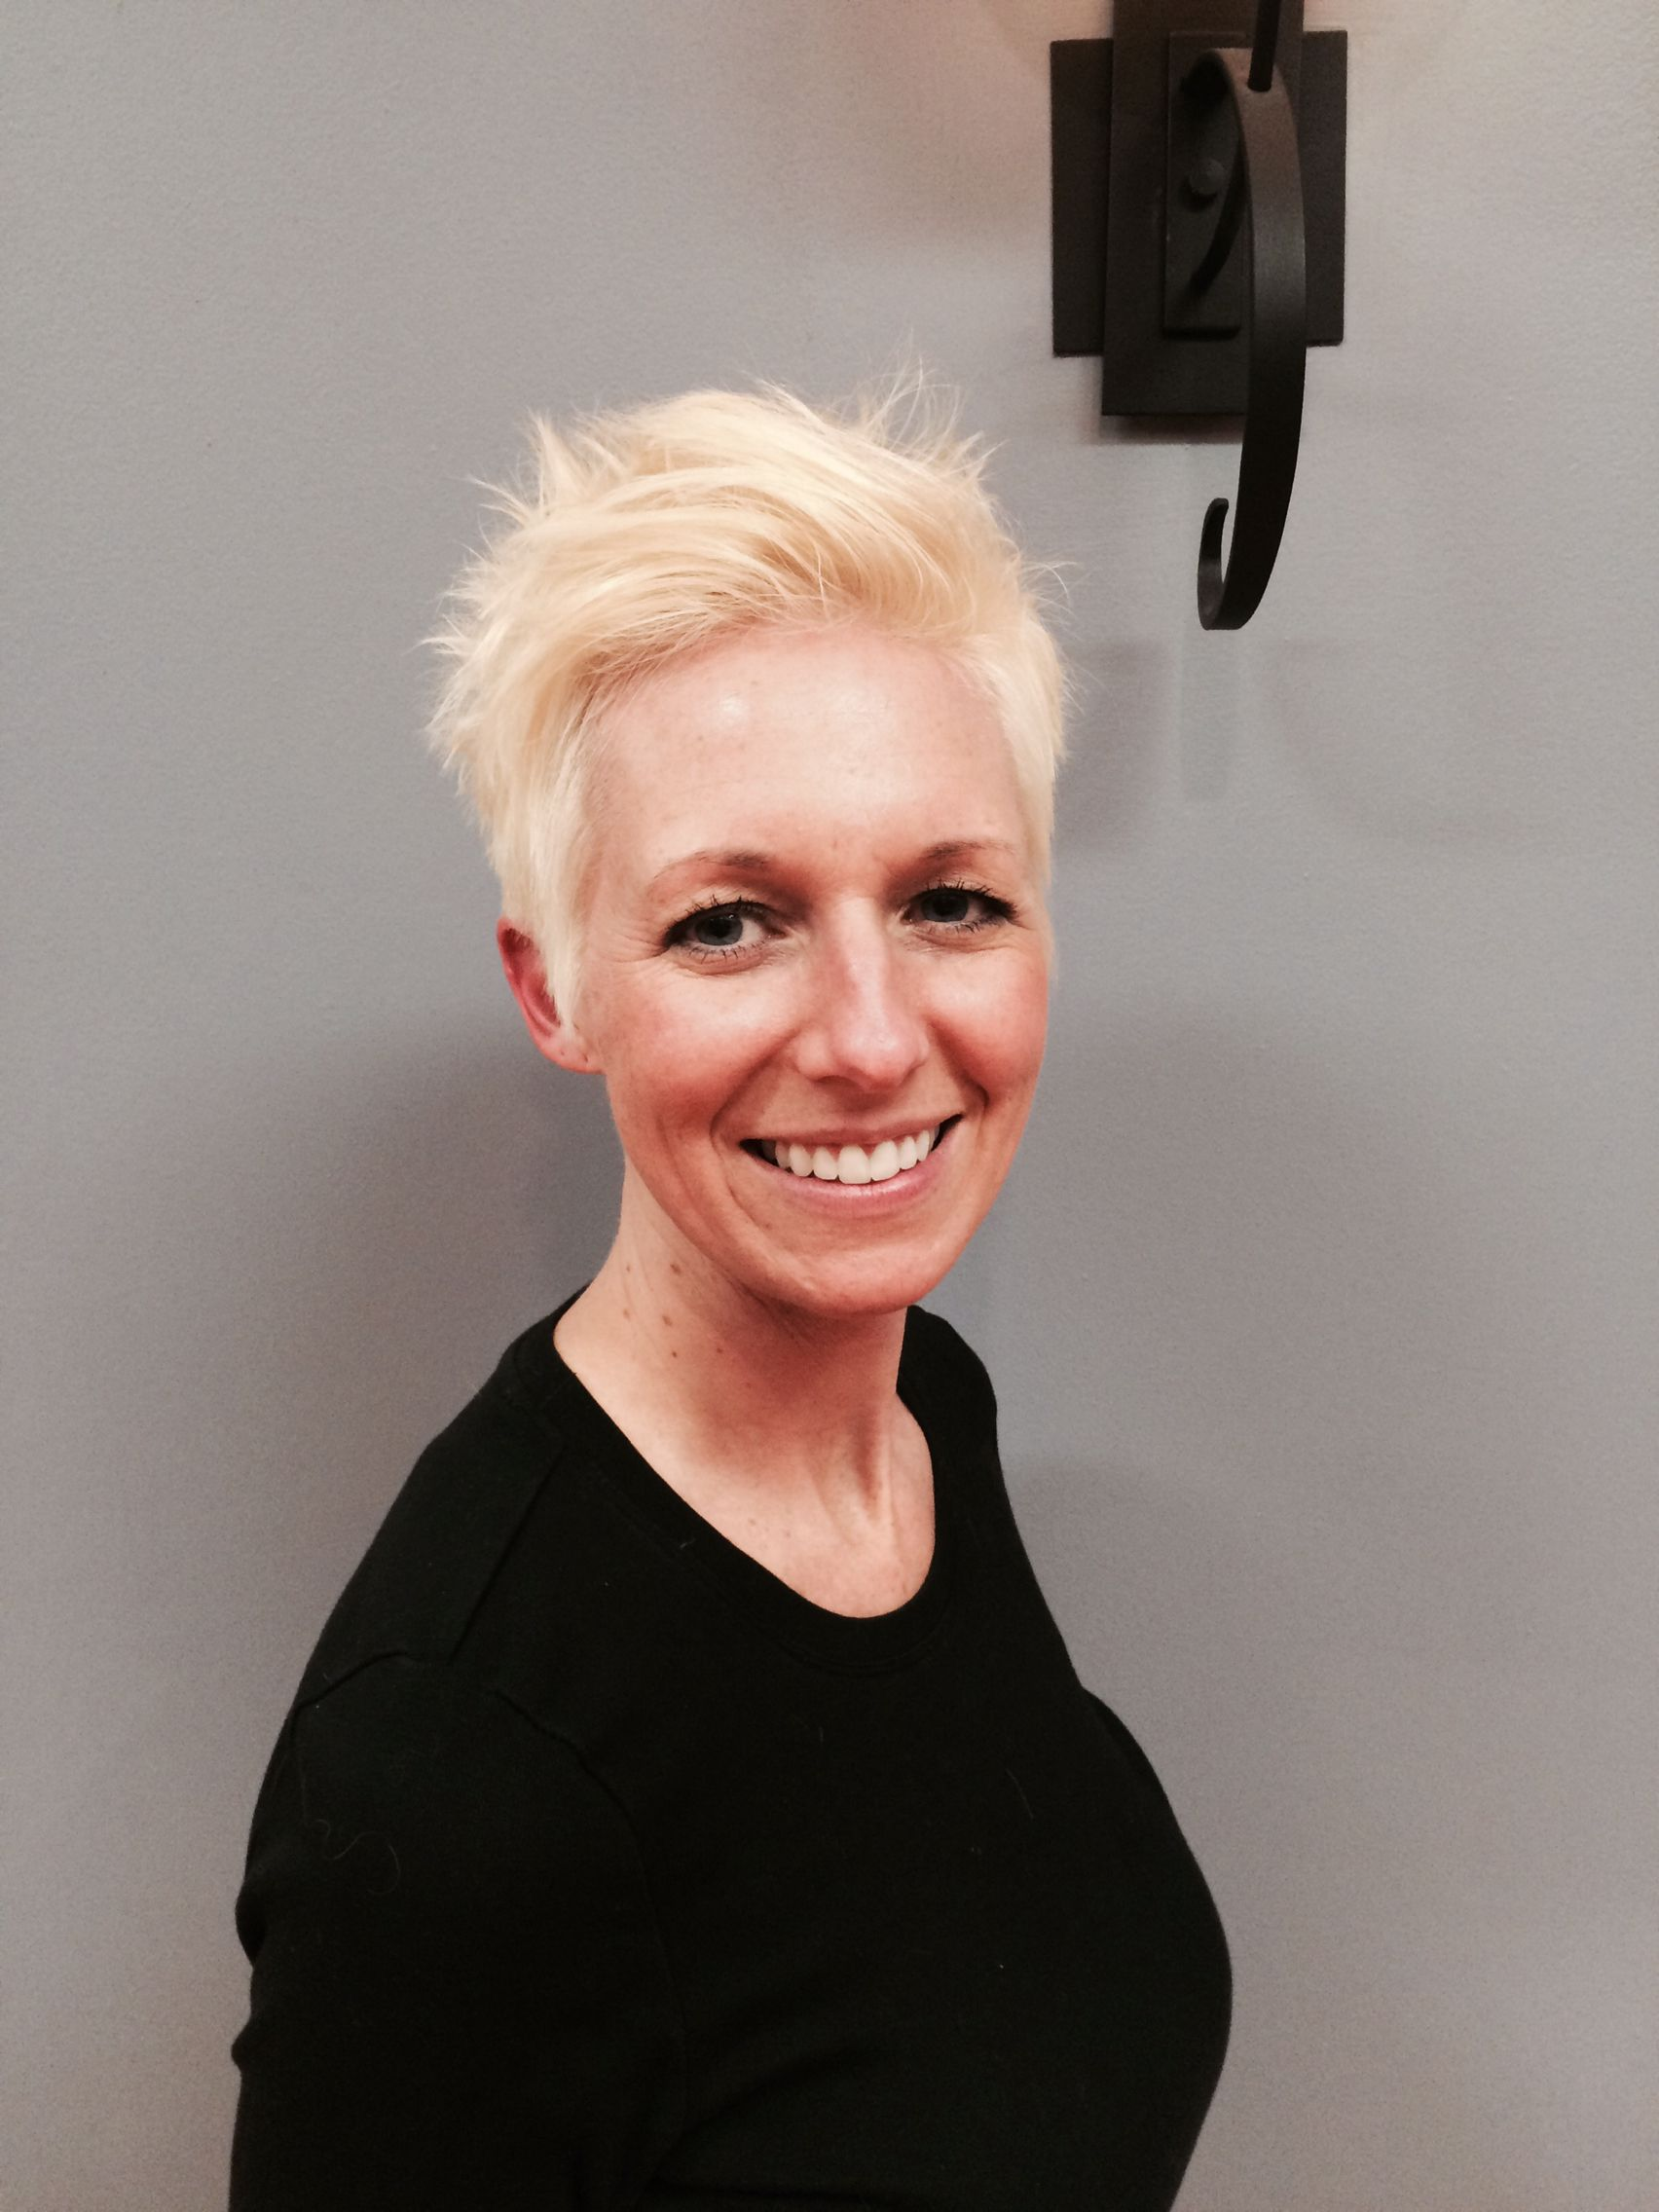 Texturized Blonde Pixie Haircut By Jen W At Avante Salon And Spa